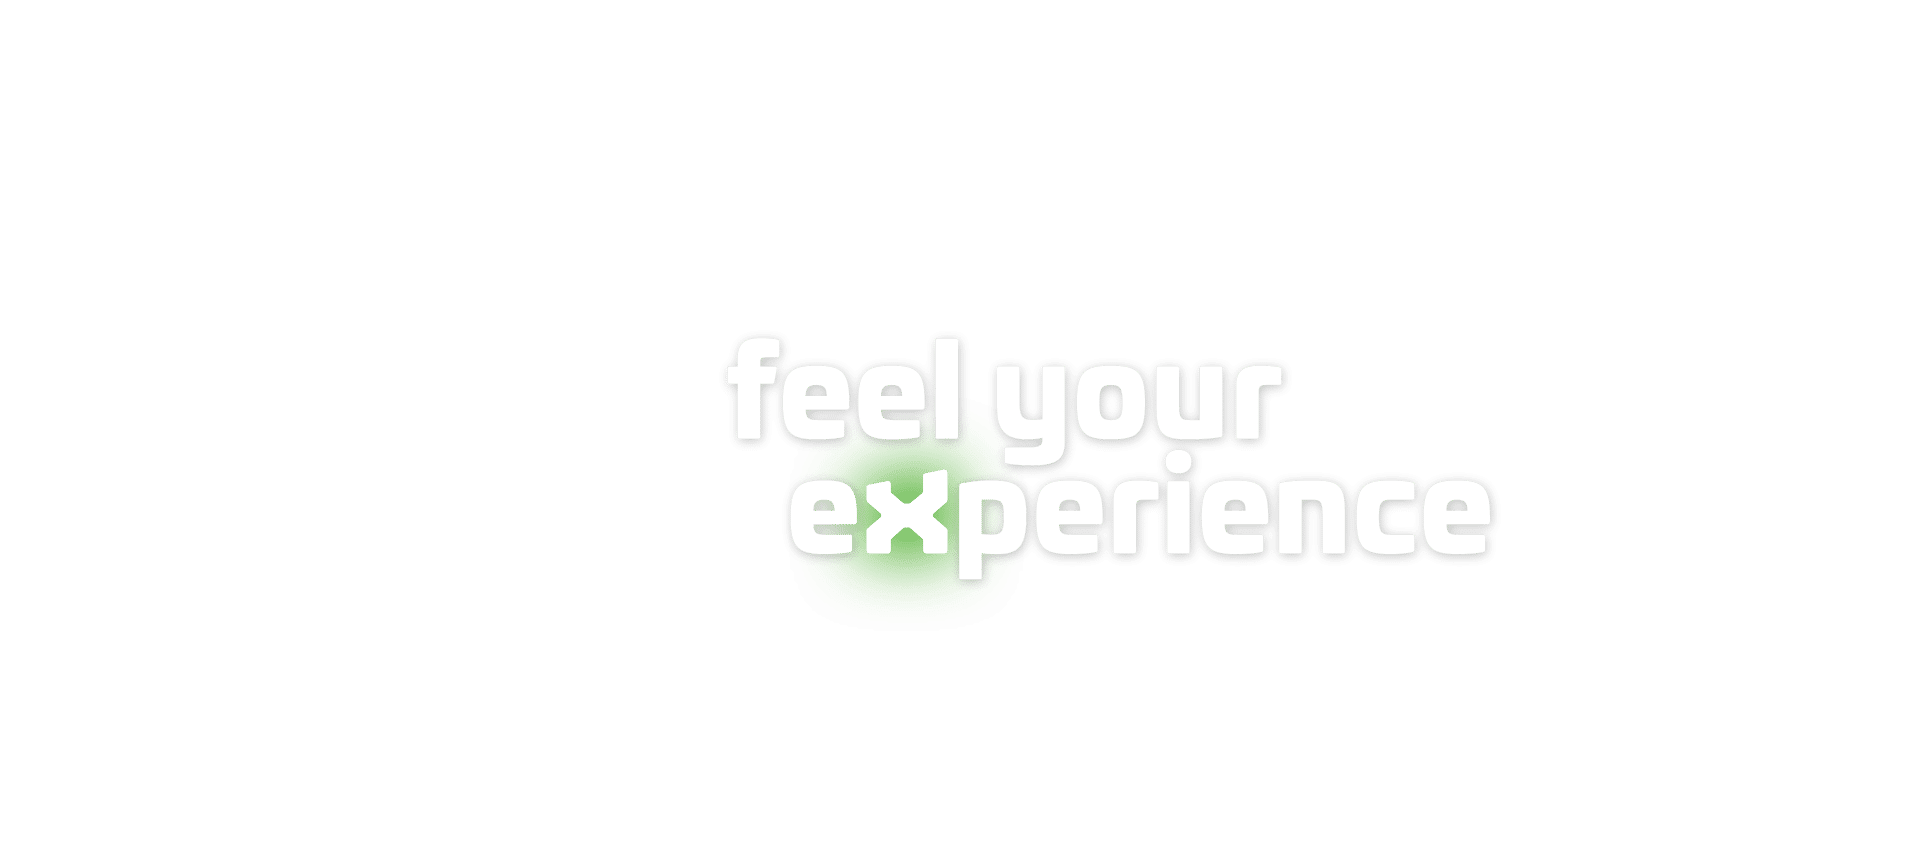 feel your eXperience